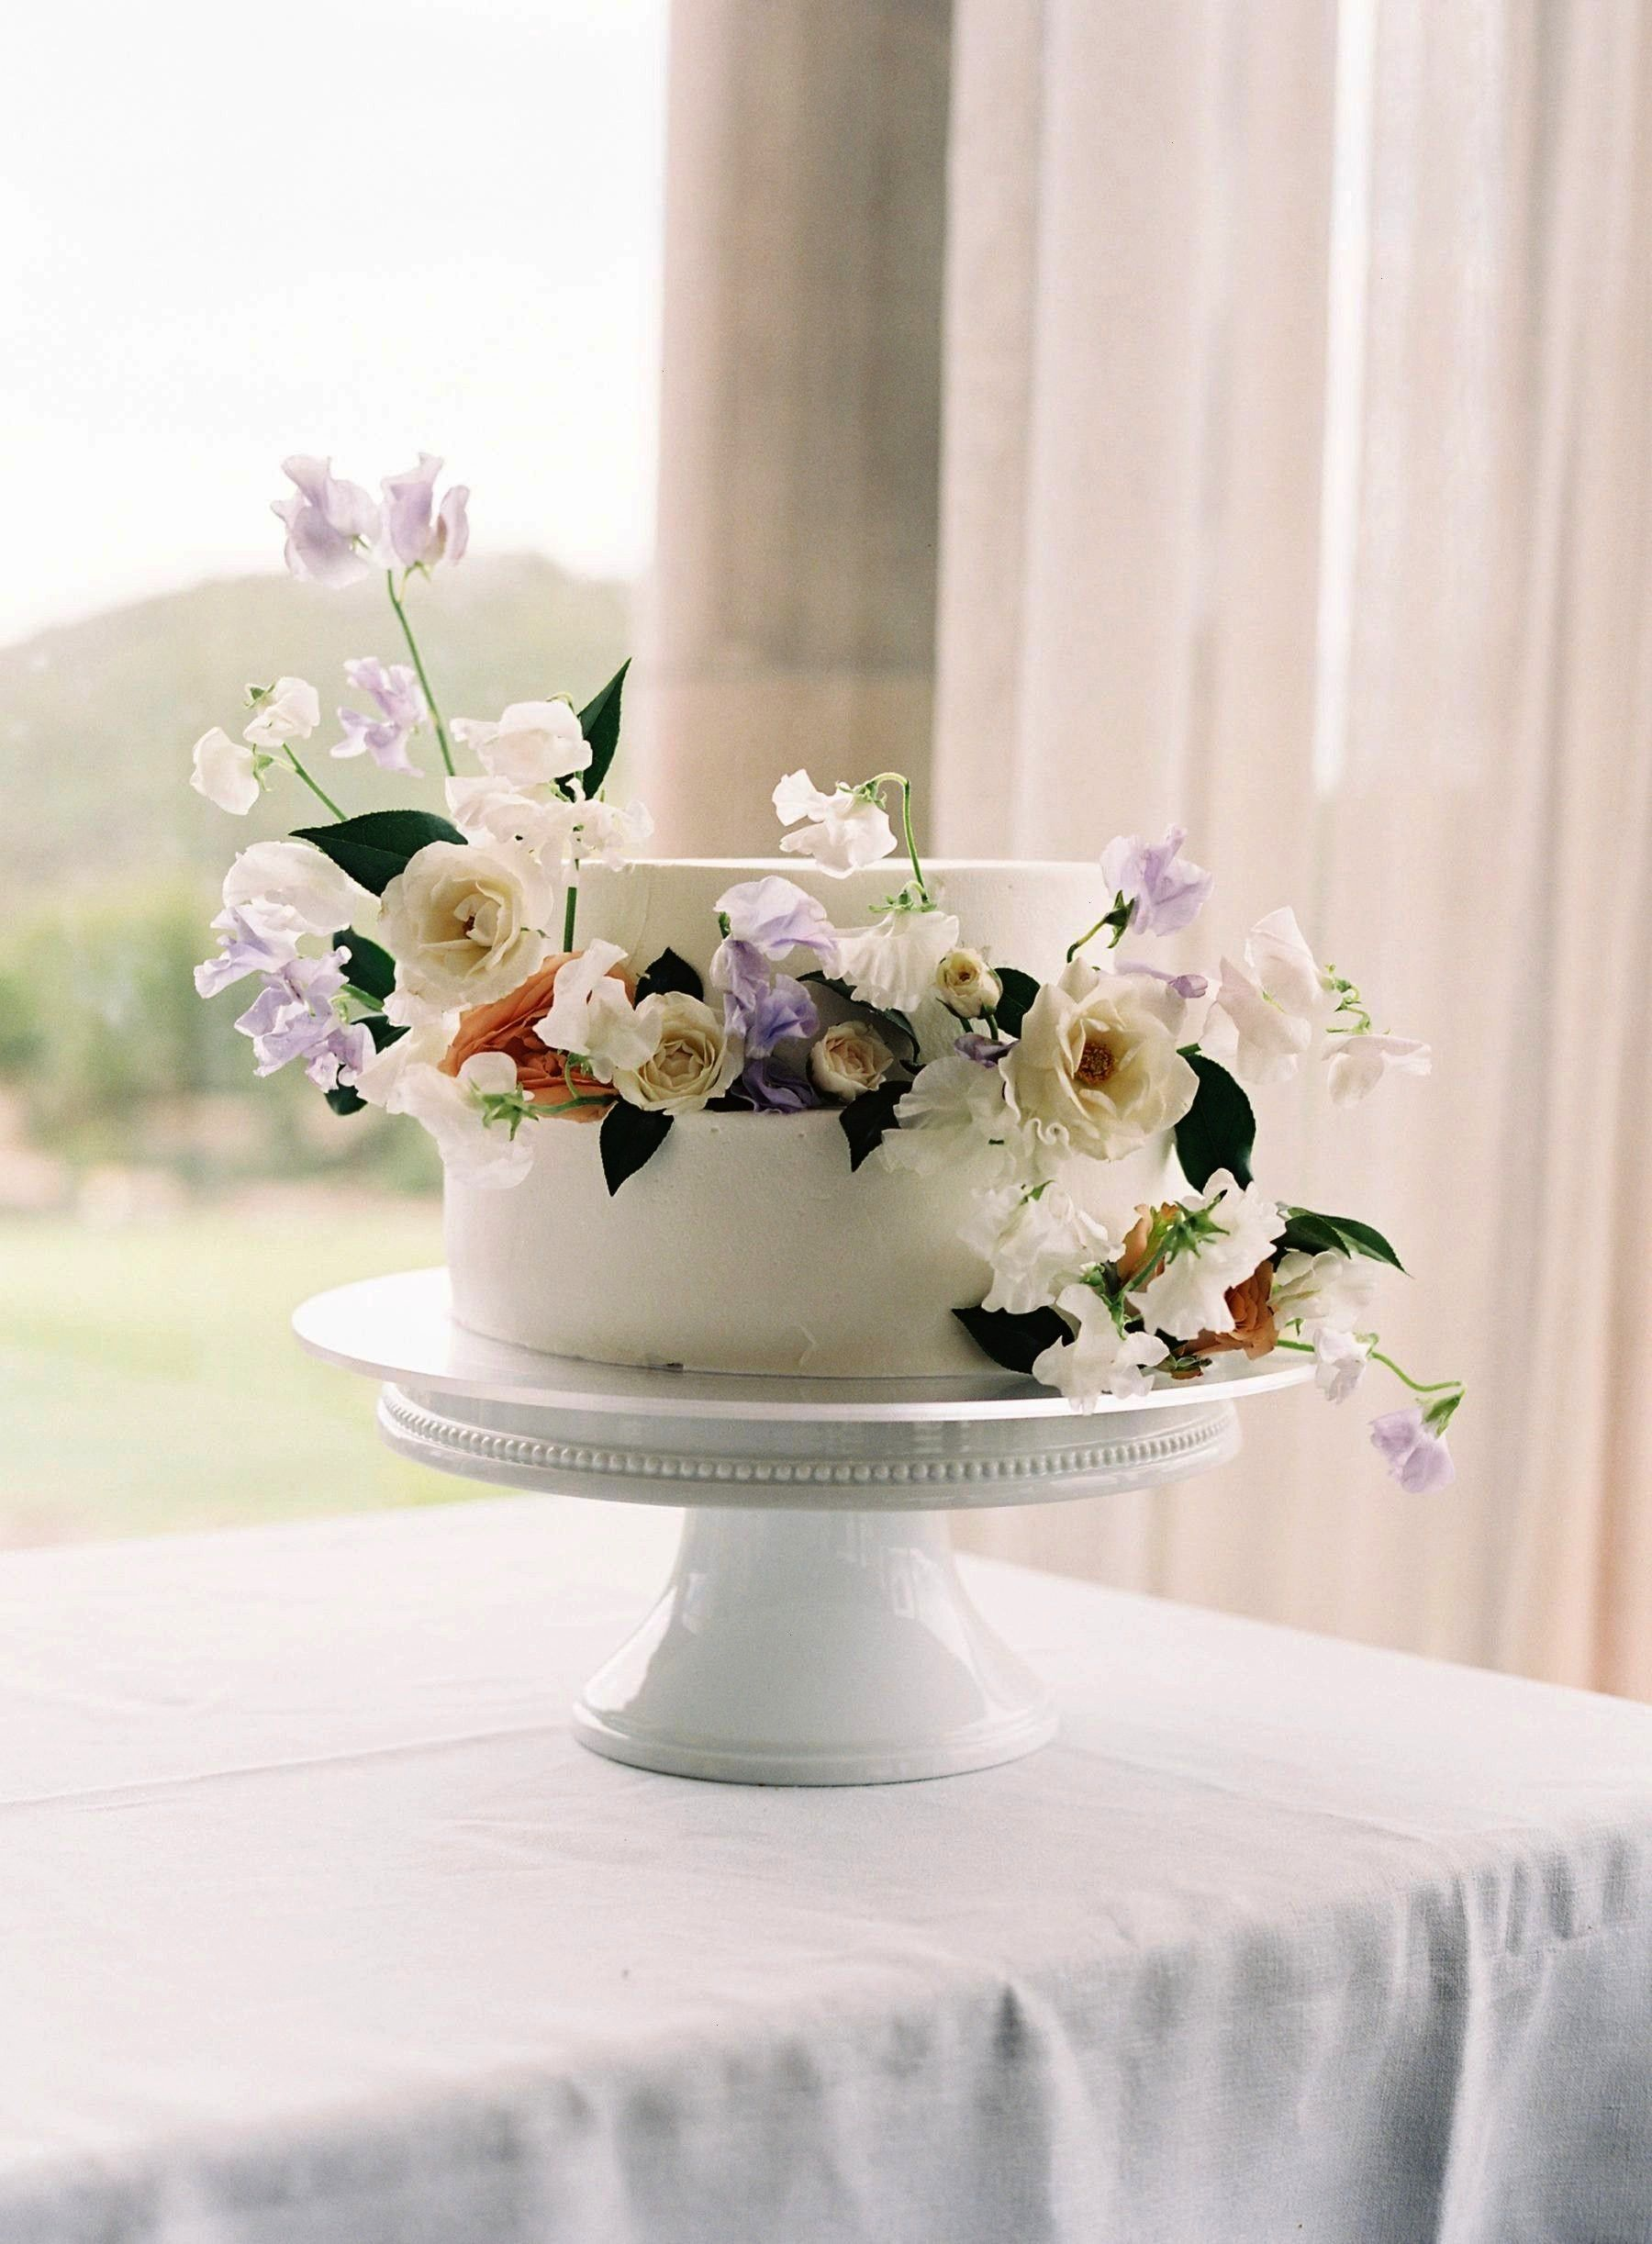 Wedding at Silver Creek Valley Country Club Modern Spring Wedding at Silver Creek Valley Country ClubModern Spring Wedding at Silver Creek Valley Country Club Follow us S...